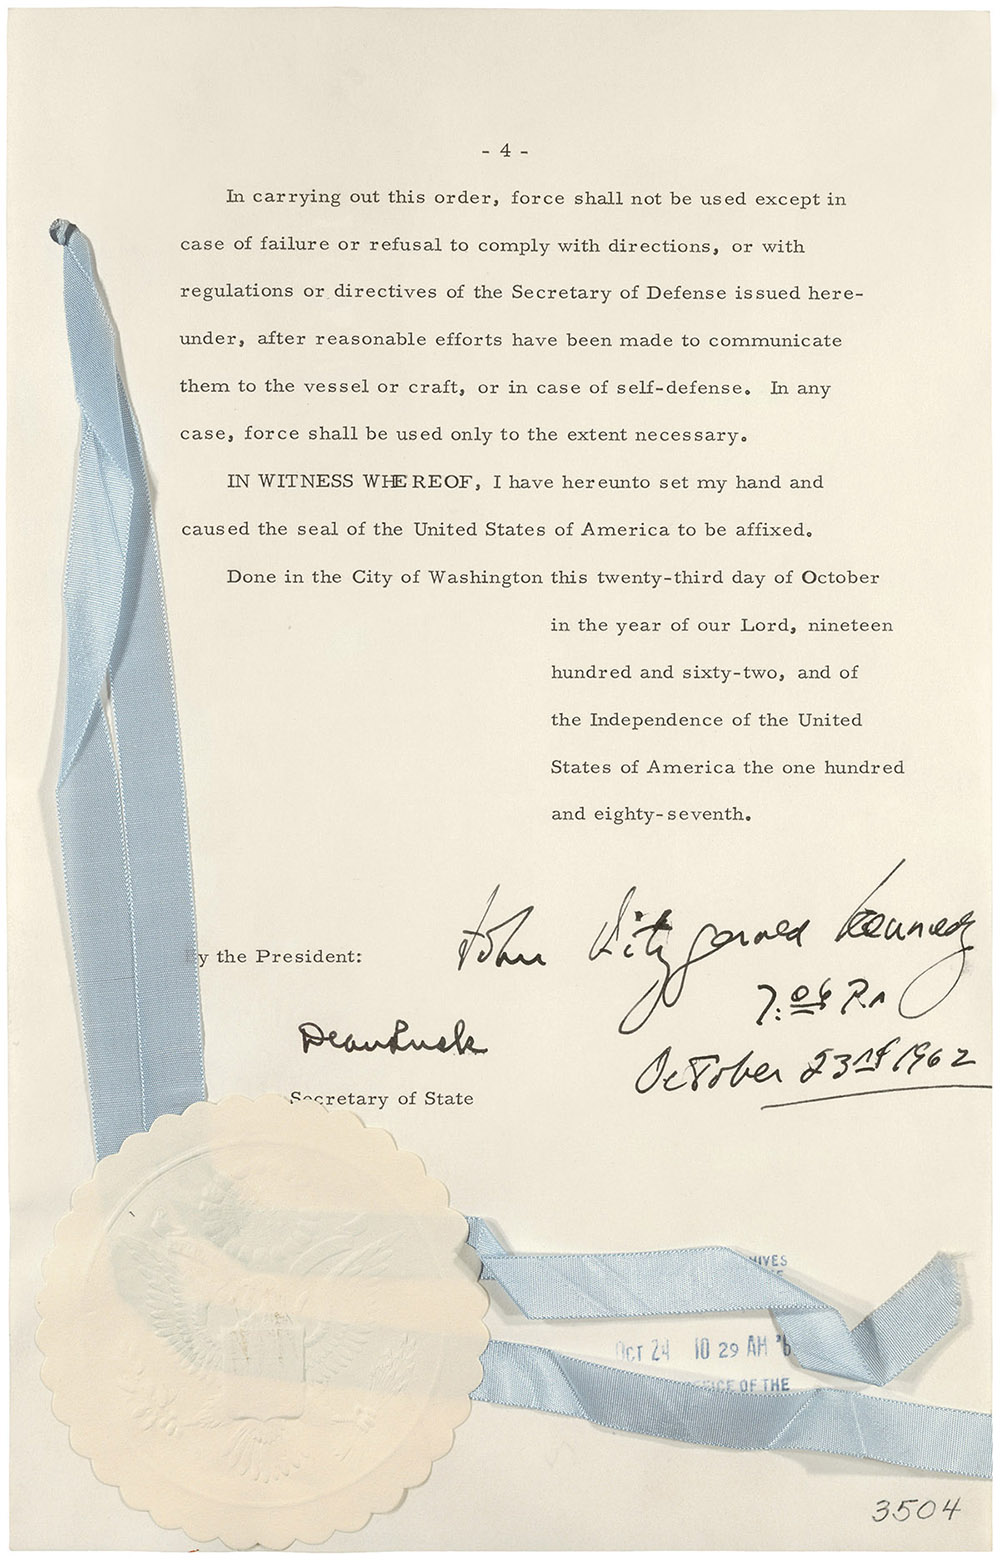 the n missile crisis at national archives the final signed page of the quarantine proclamation or interdiction of the delivery of offensive weapons to kennedy library